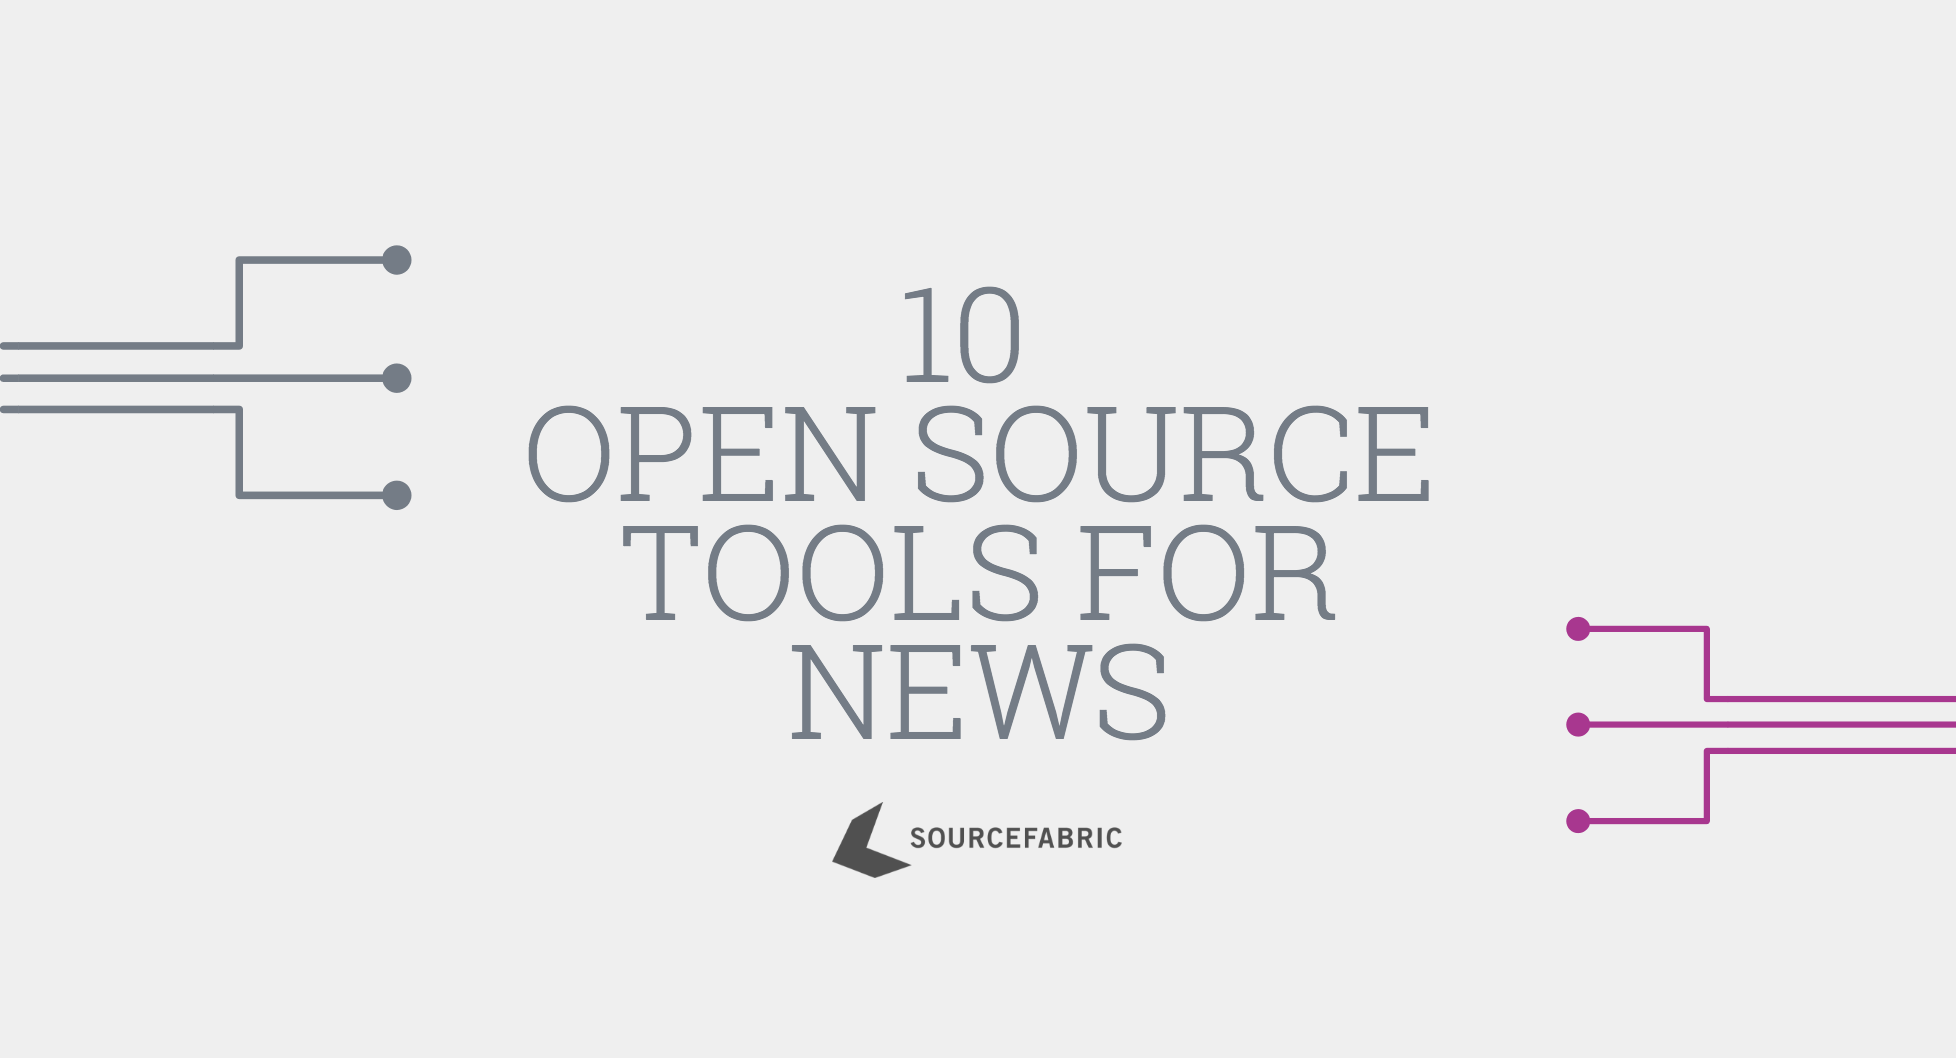 10 Open Source Tools for News That You Sho